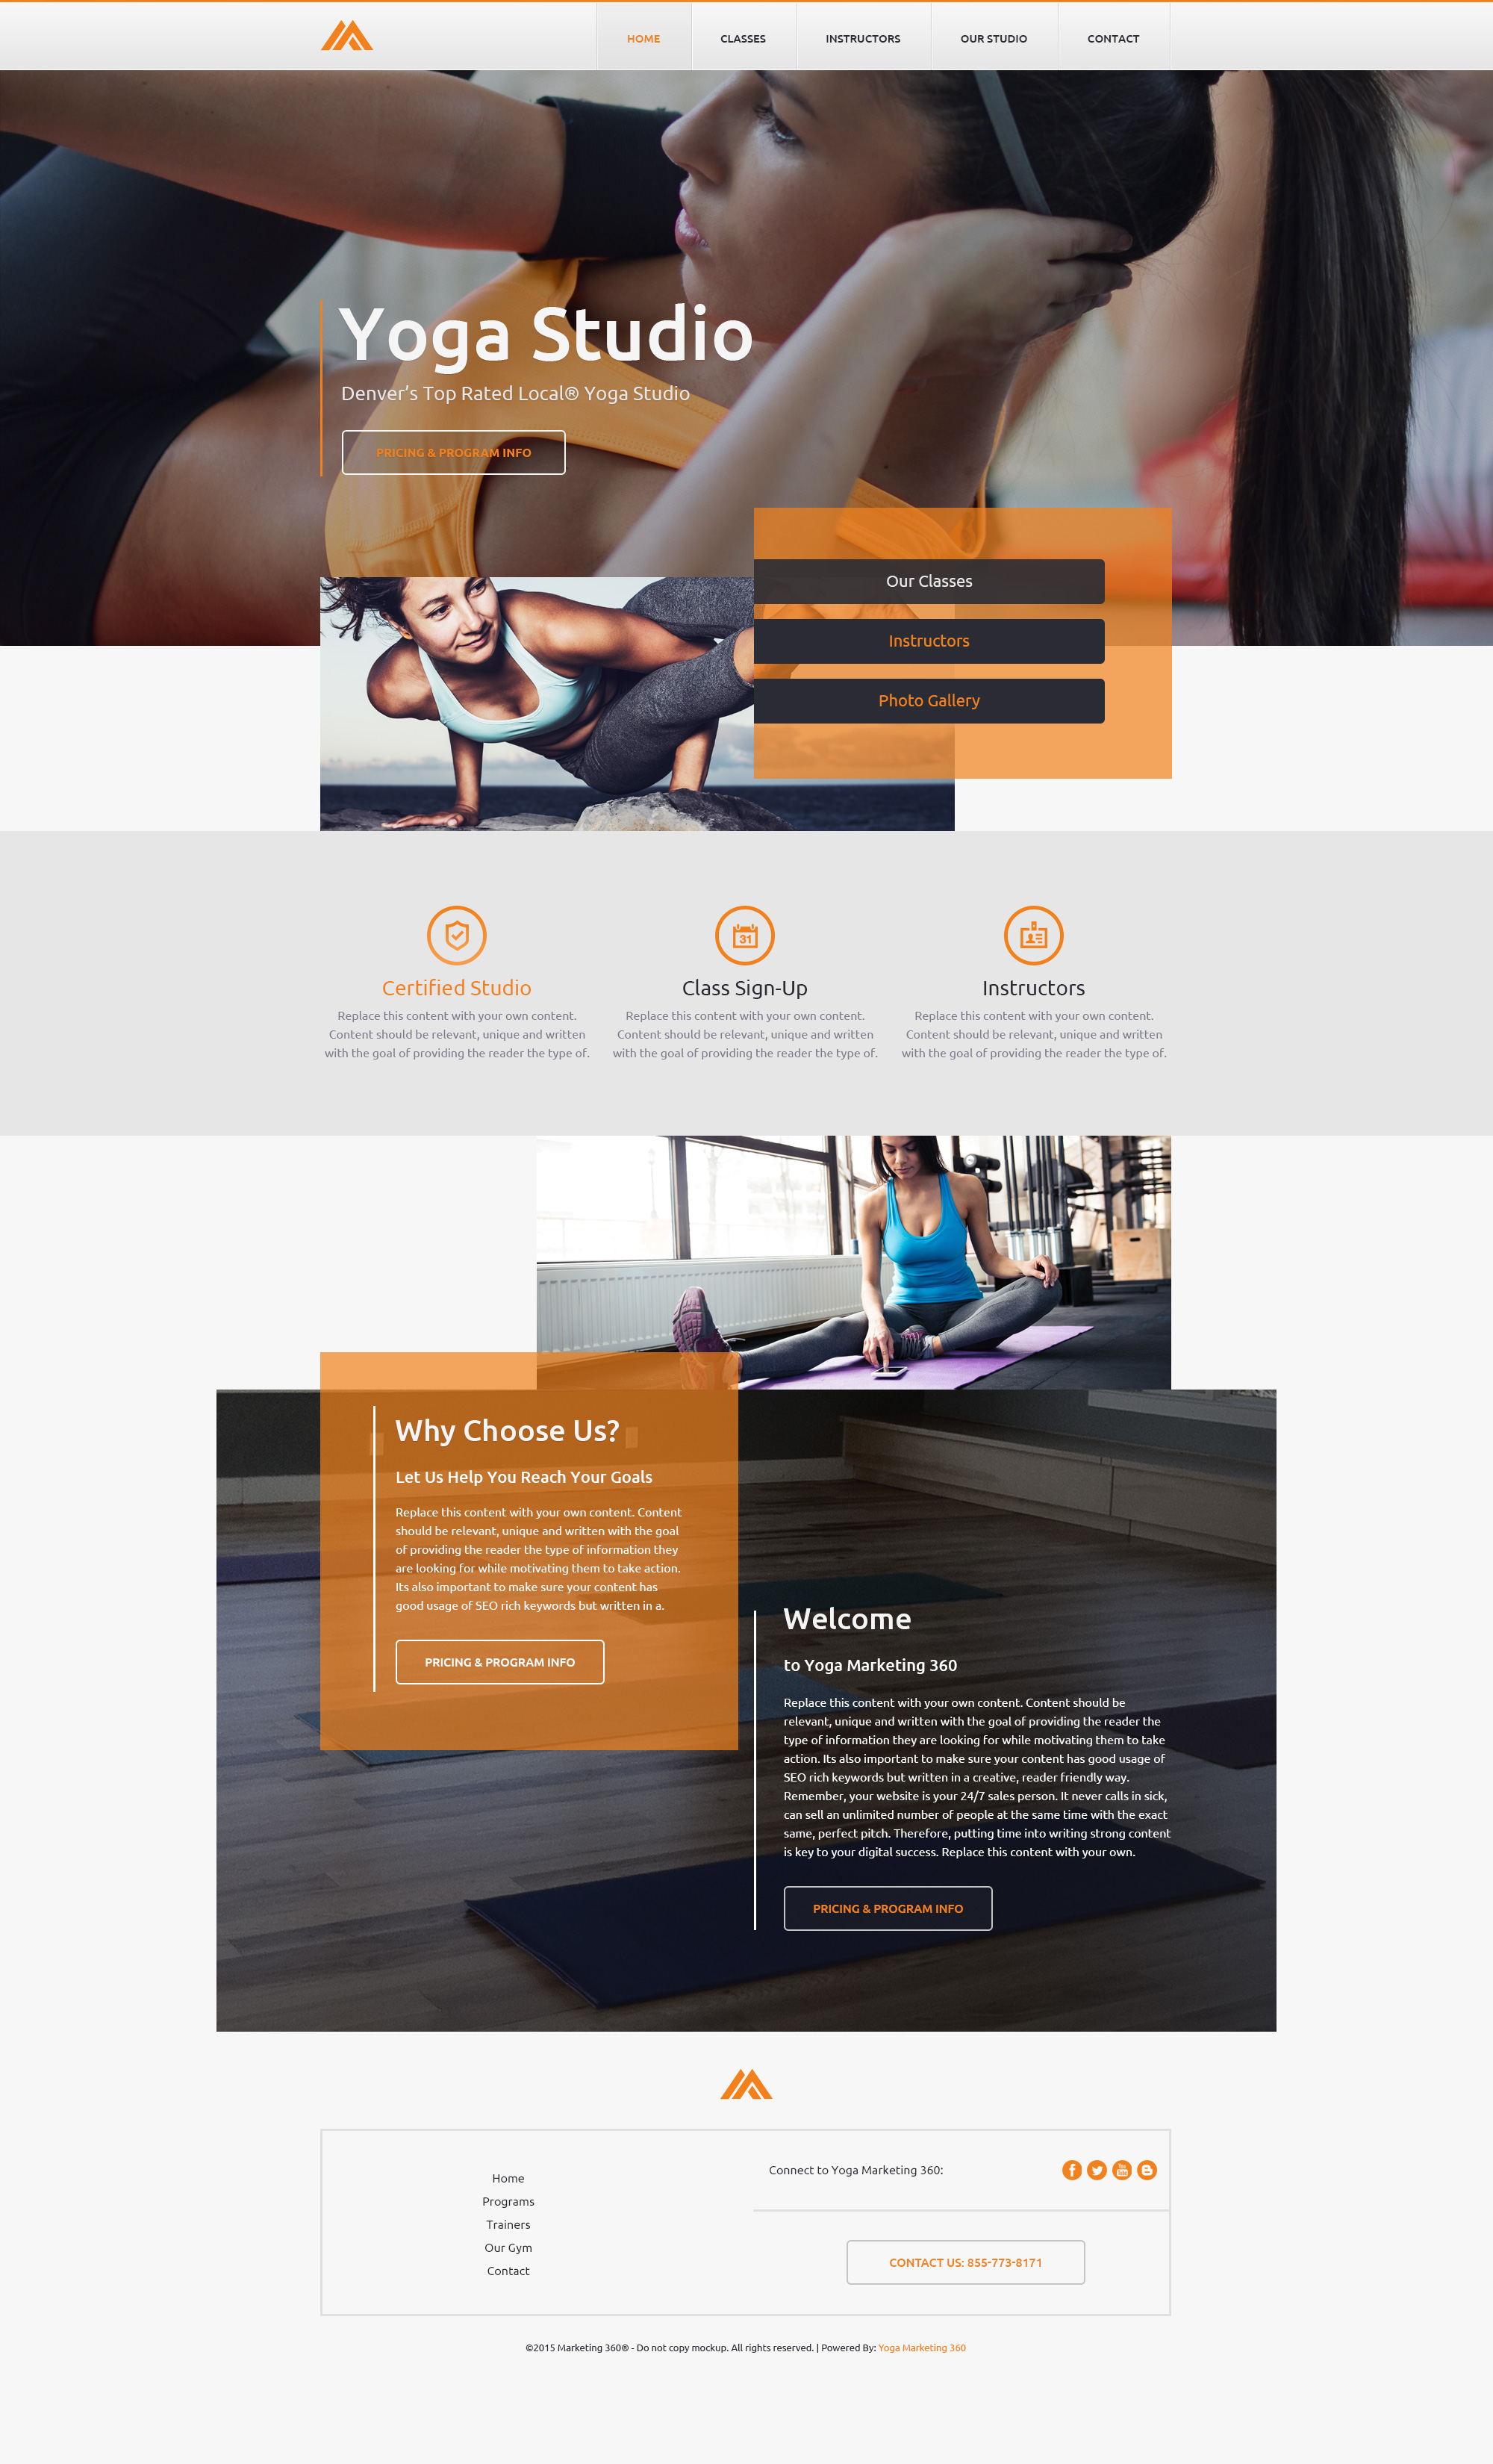 Yoga Websites Templates - Mobile Responsive Designs for Yoga Studios